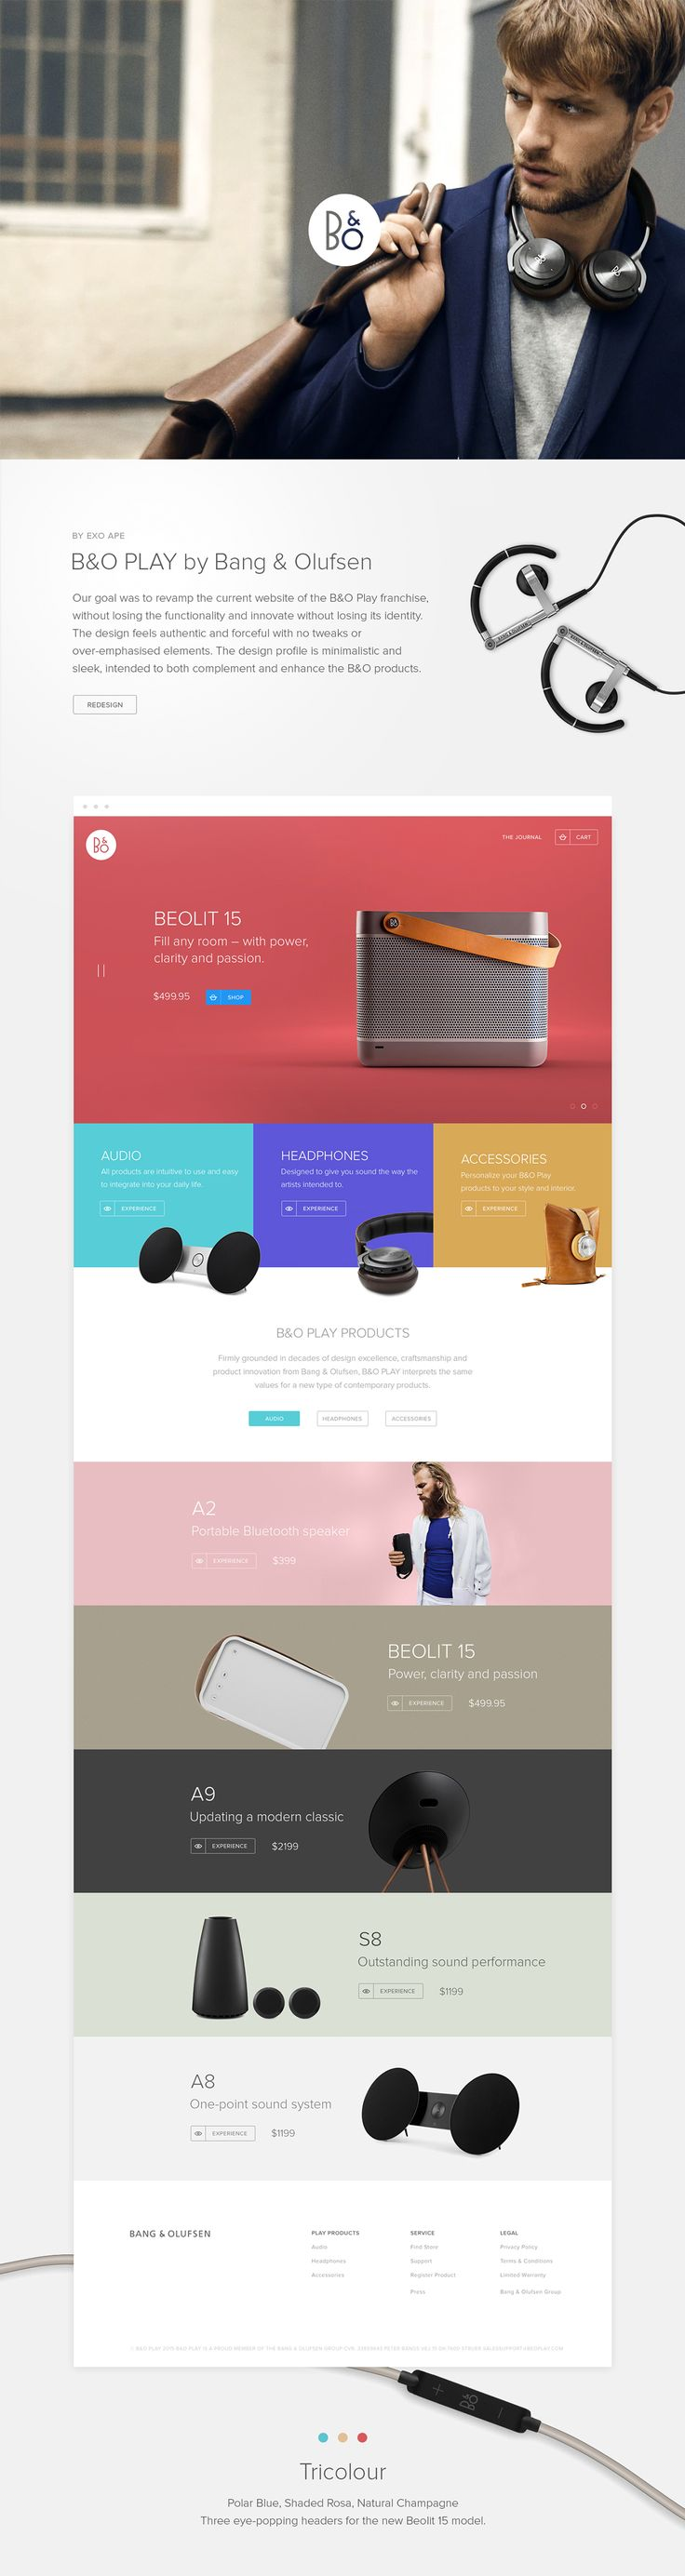 B&O Play #web #design